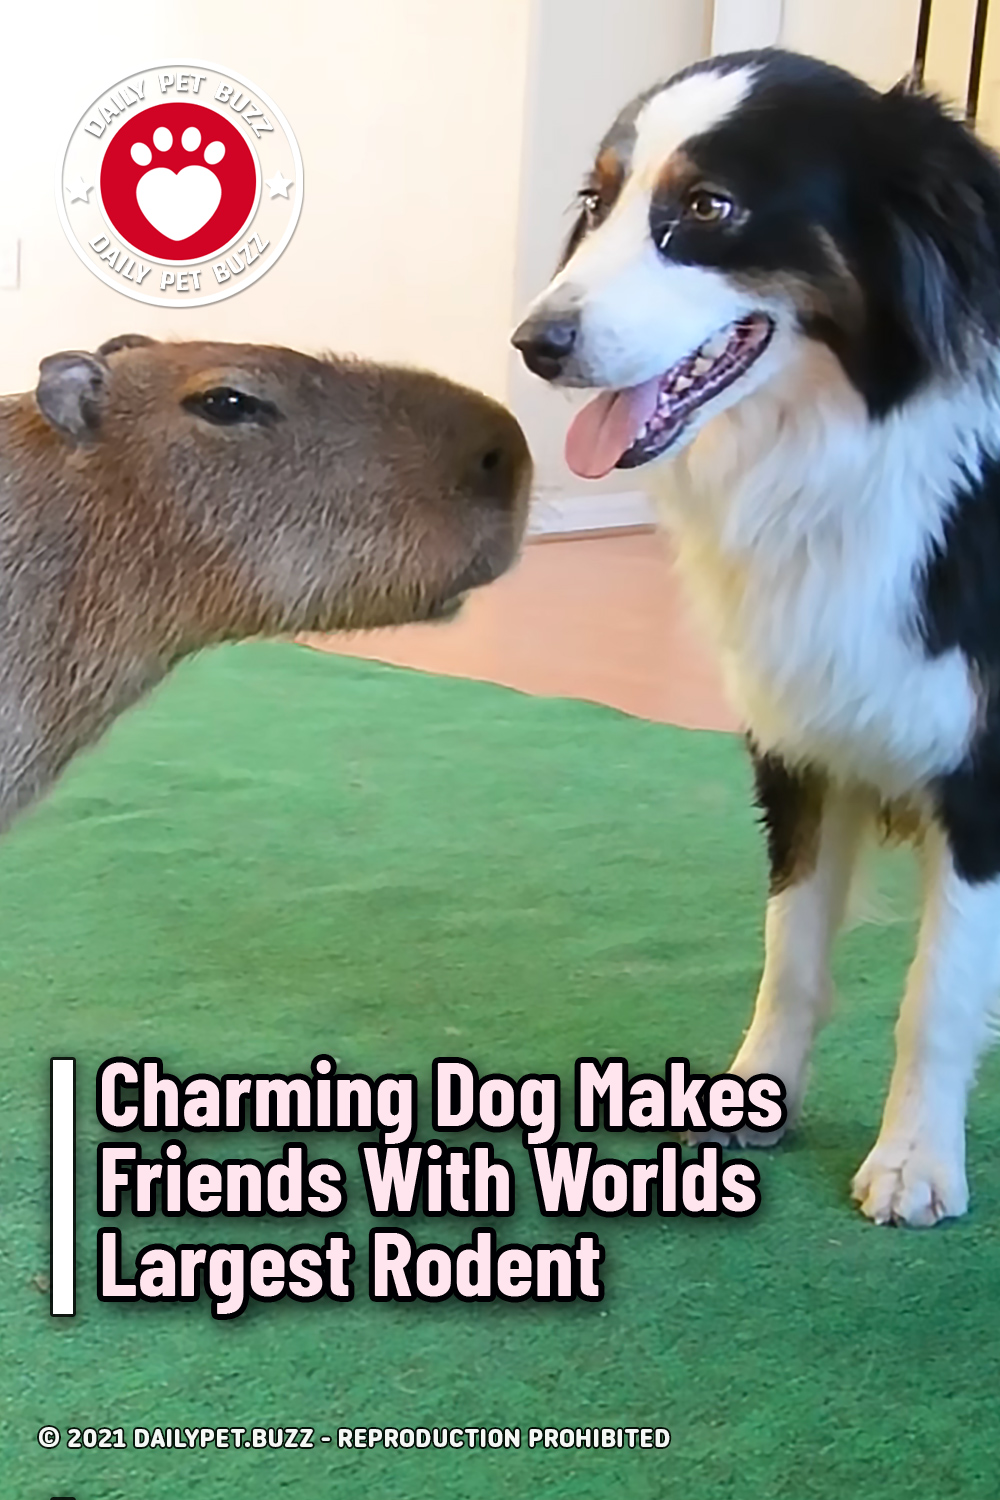 Charming Dog Makes Friends With Worlds Largest Rodent